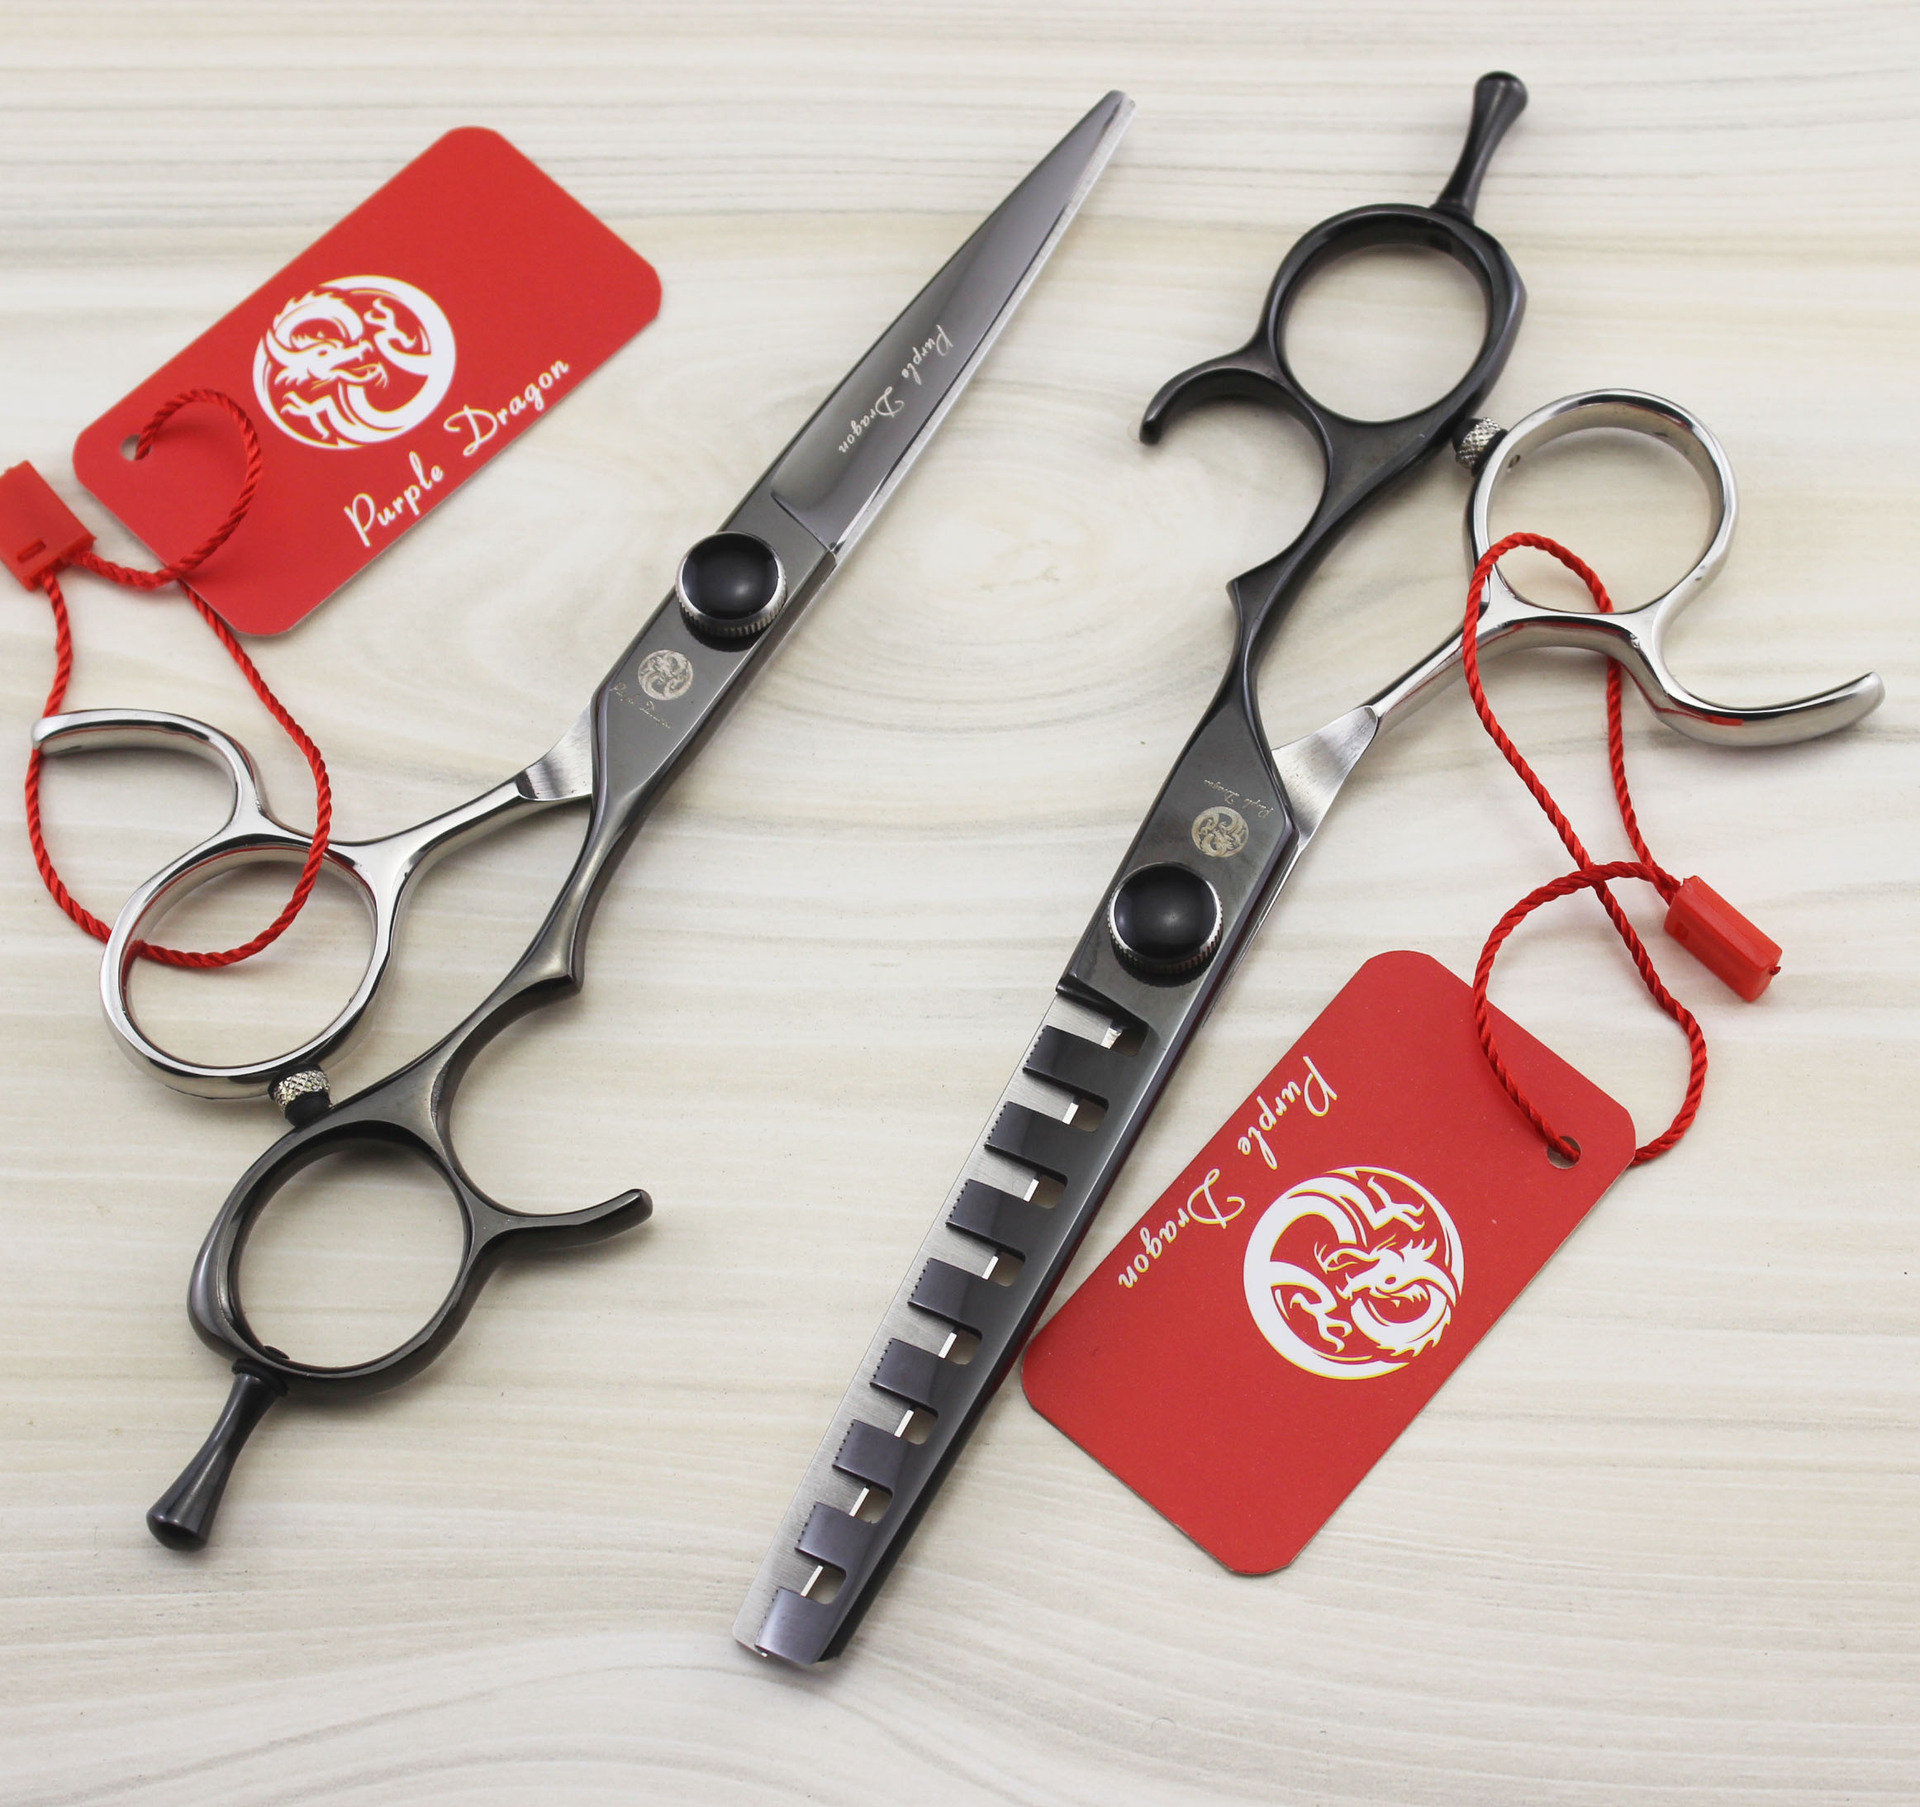 5.5 inch Japan Professional Barber Hairdressing Shears Hair Cutting Scissors Salon Equipment<br>